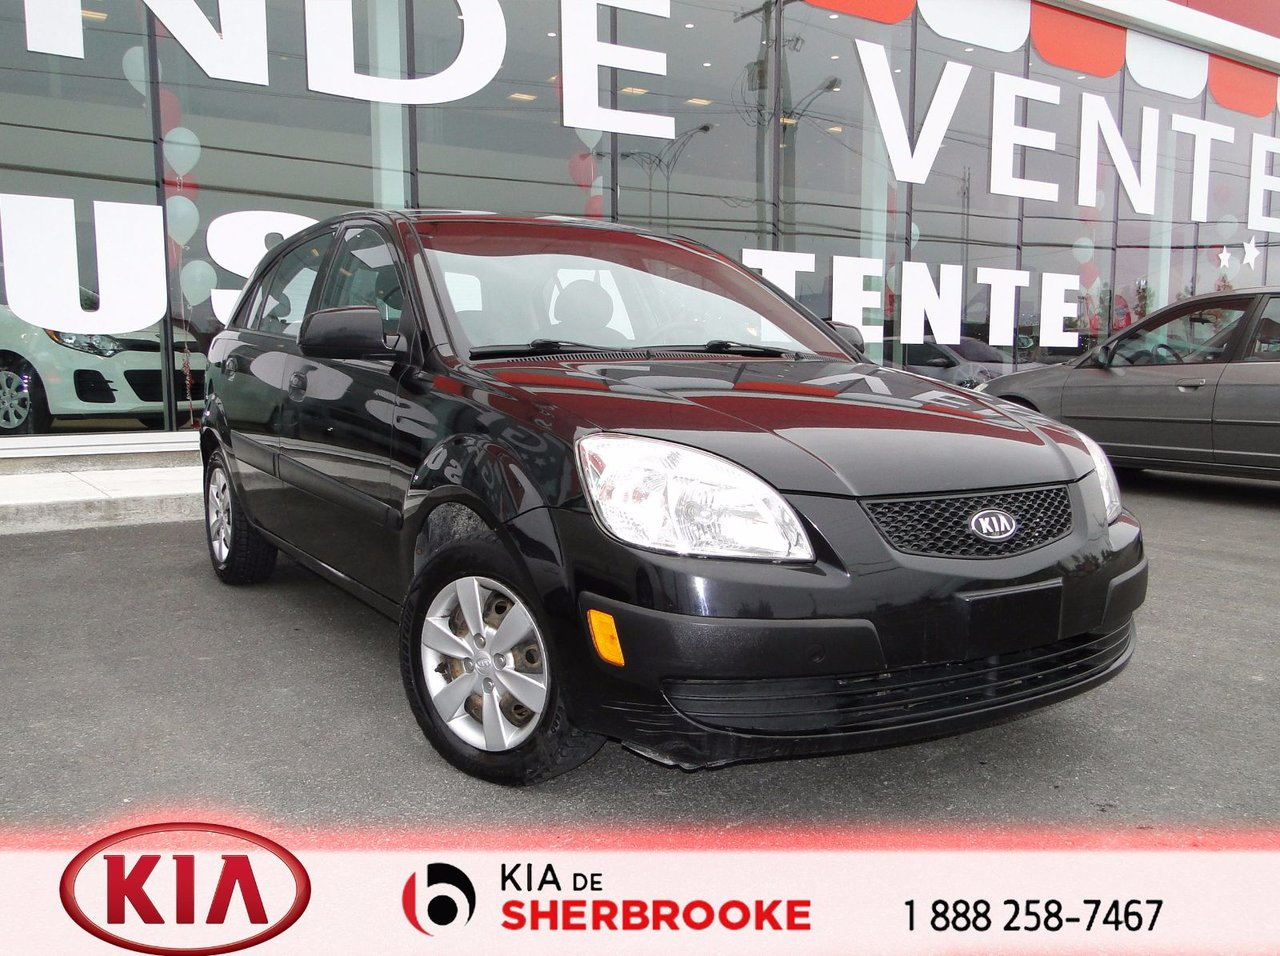 kia rio 2009 d 39 occasion vendre chez kia de sherbrooke. Black Bedroom Furniture Sets. Home Design Ideas